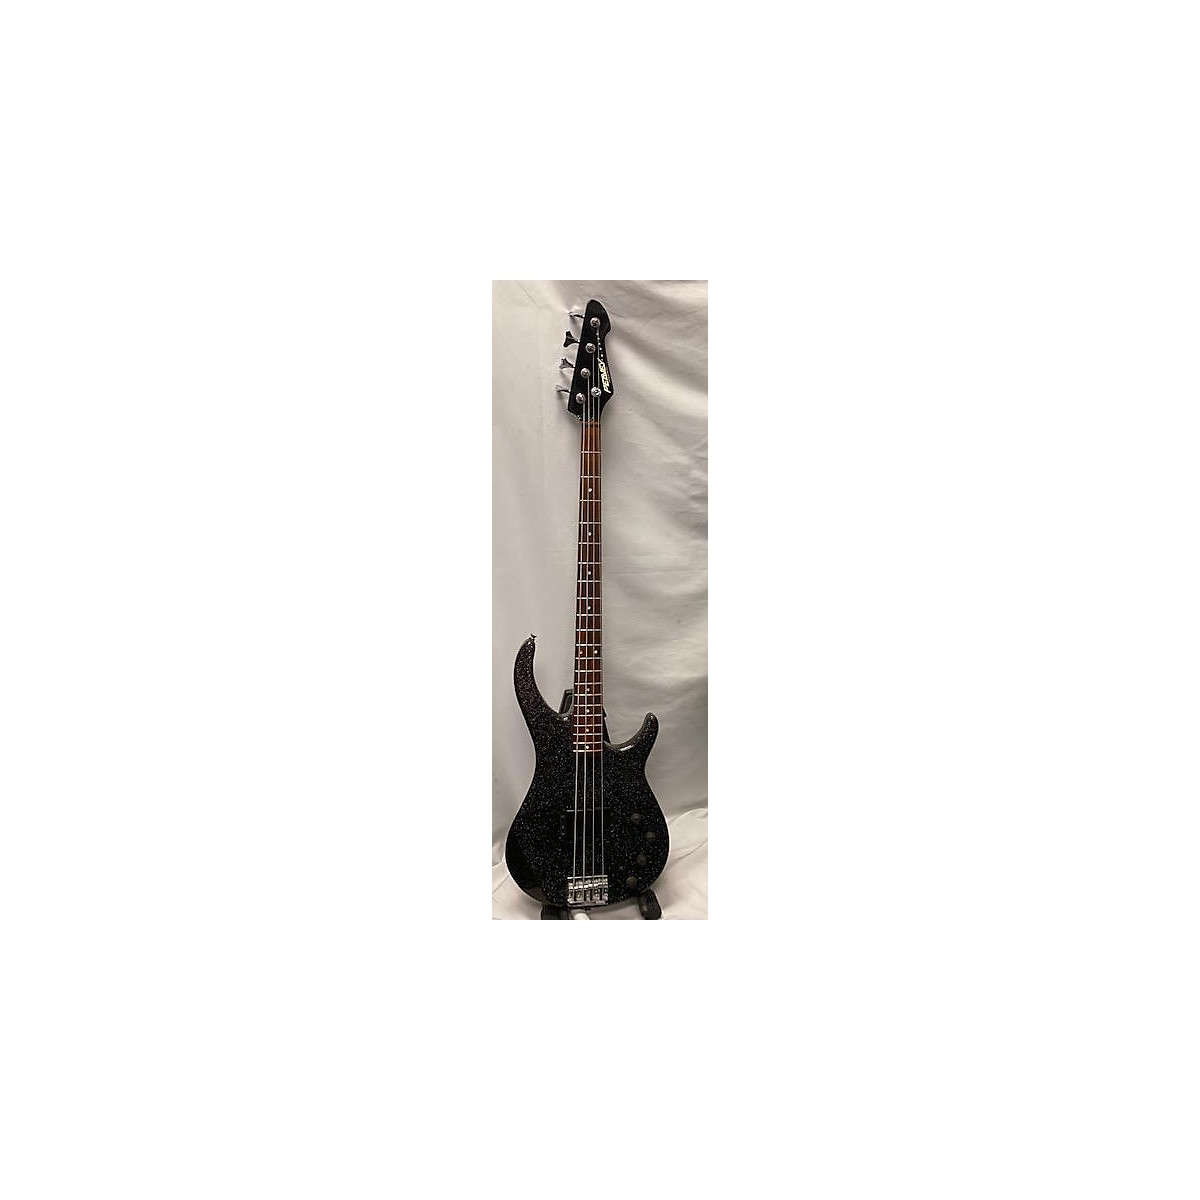 Peavey G BASS Electric Bass Guitar